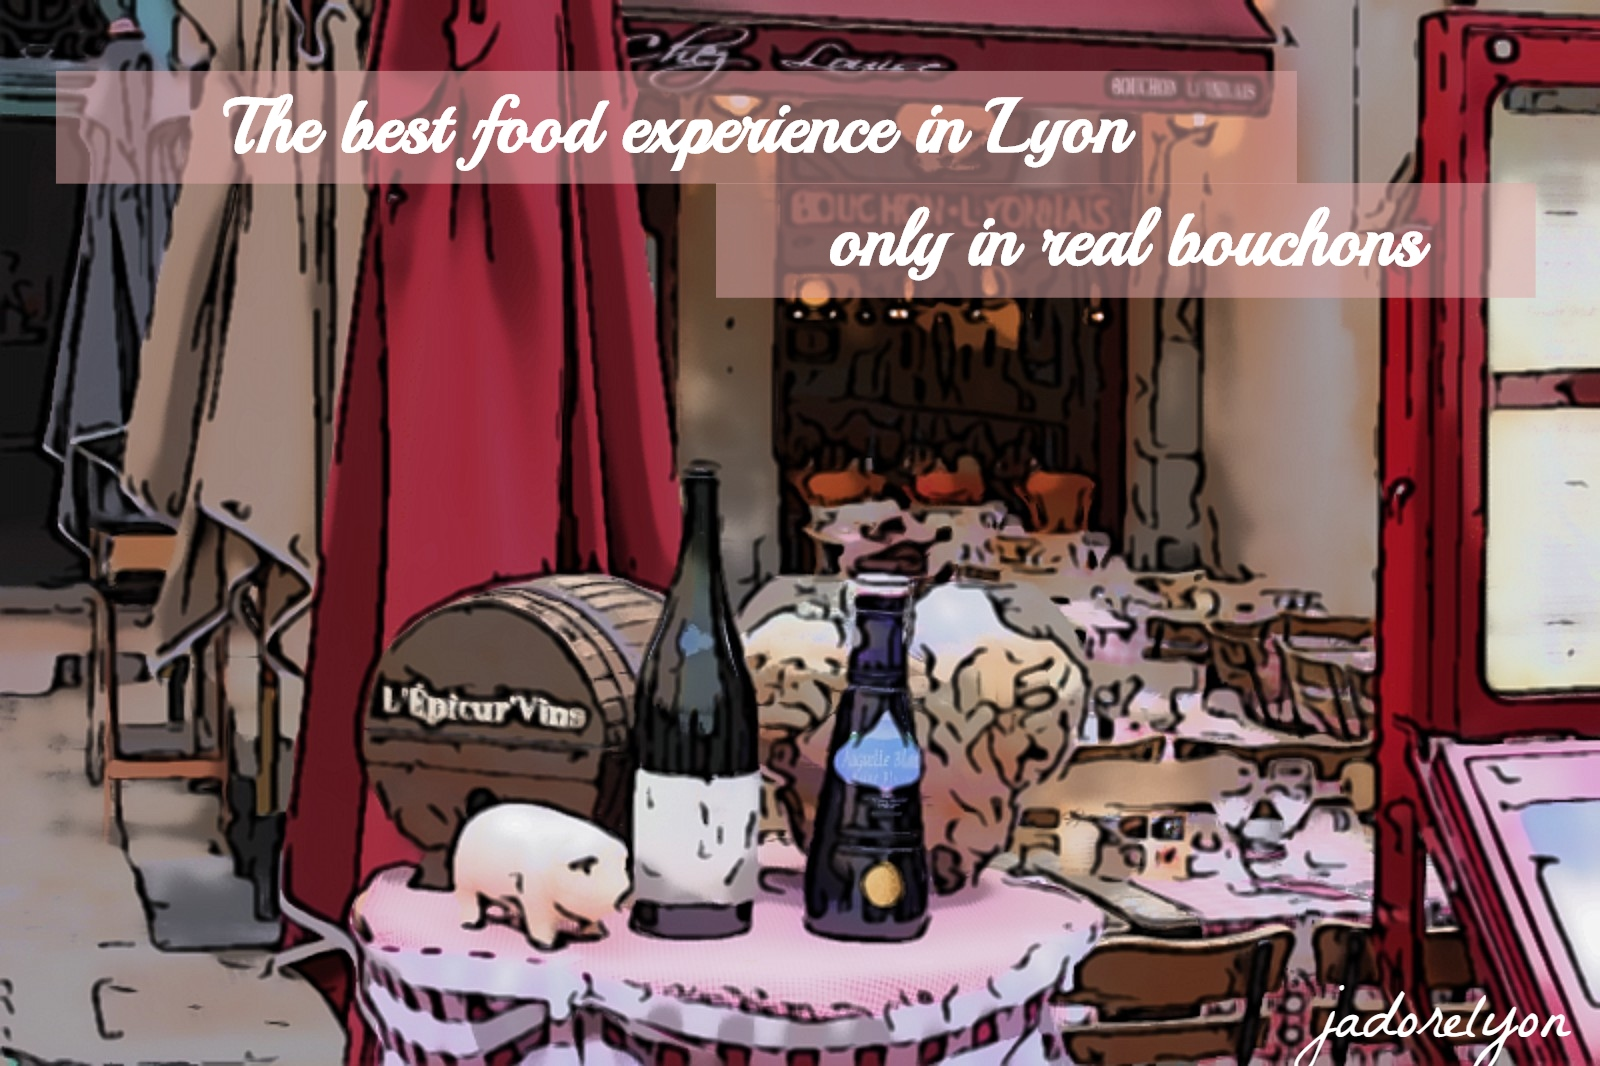 Food experience in Lyon only in bouchons